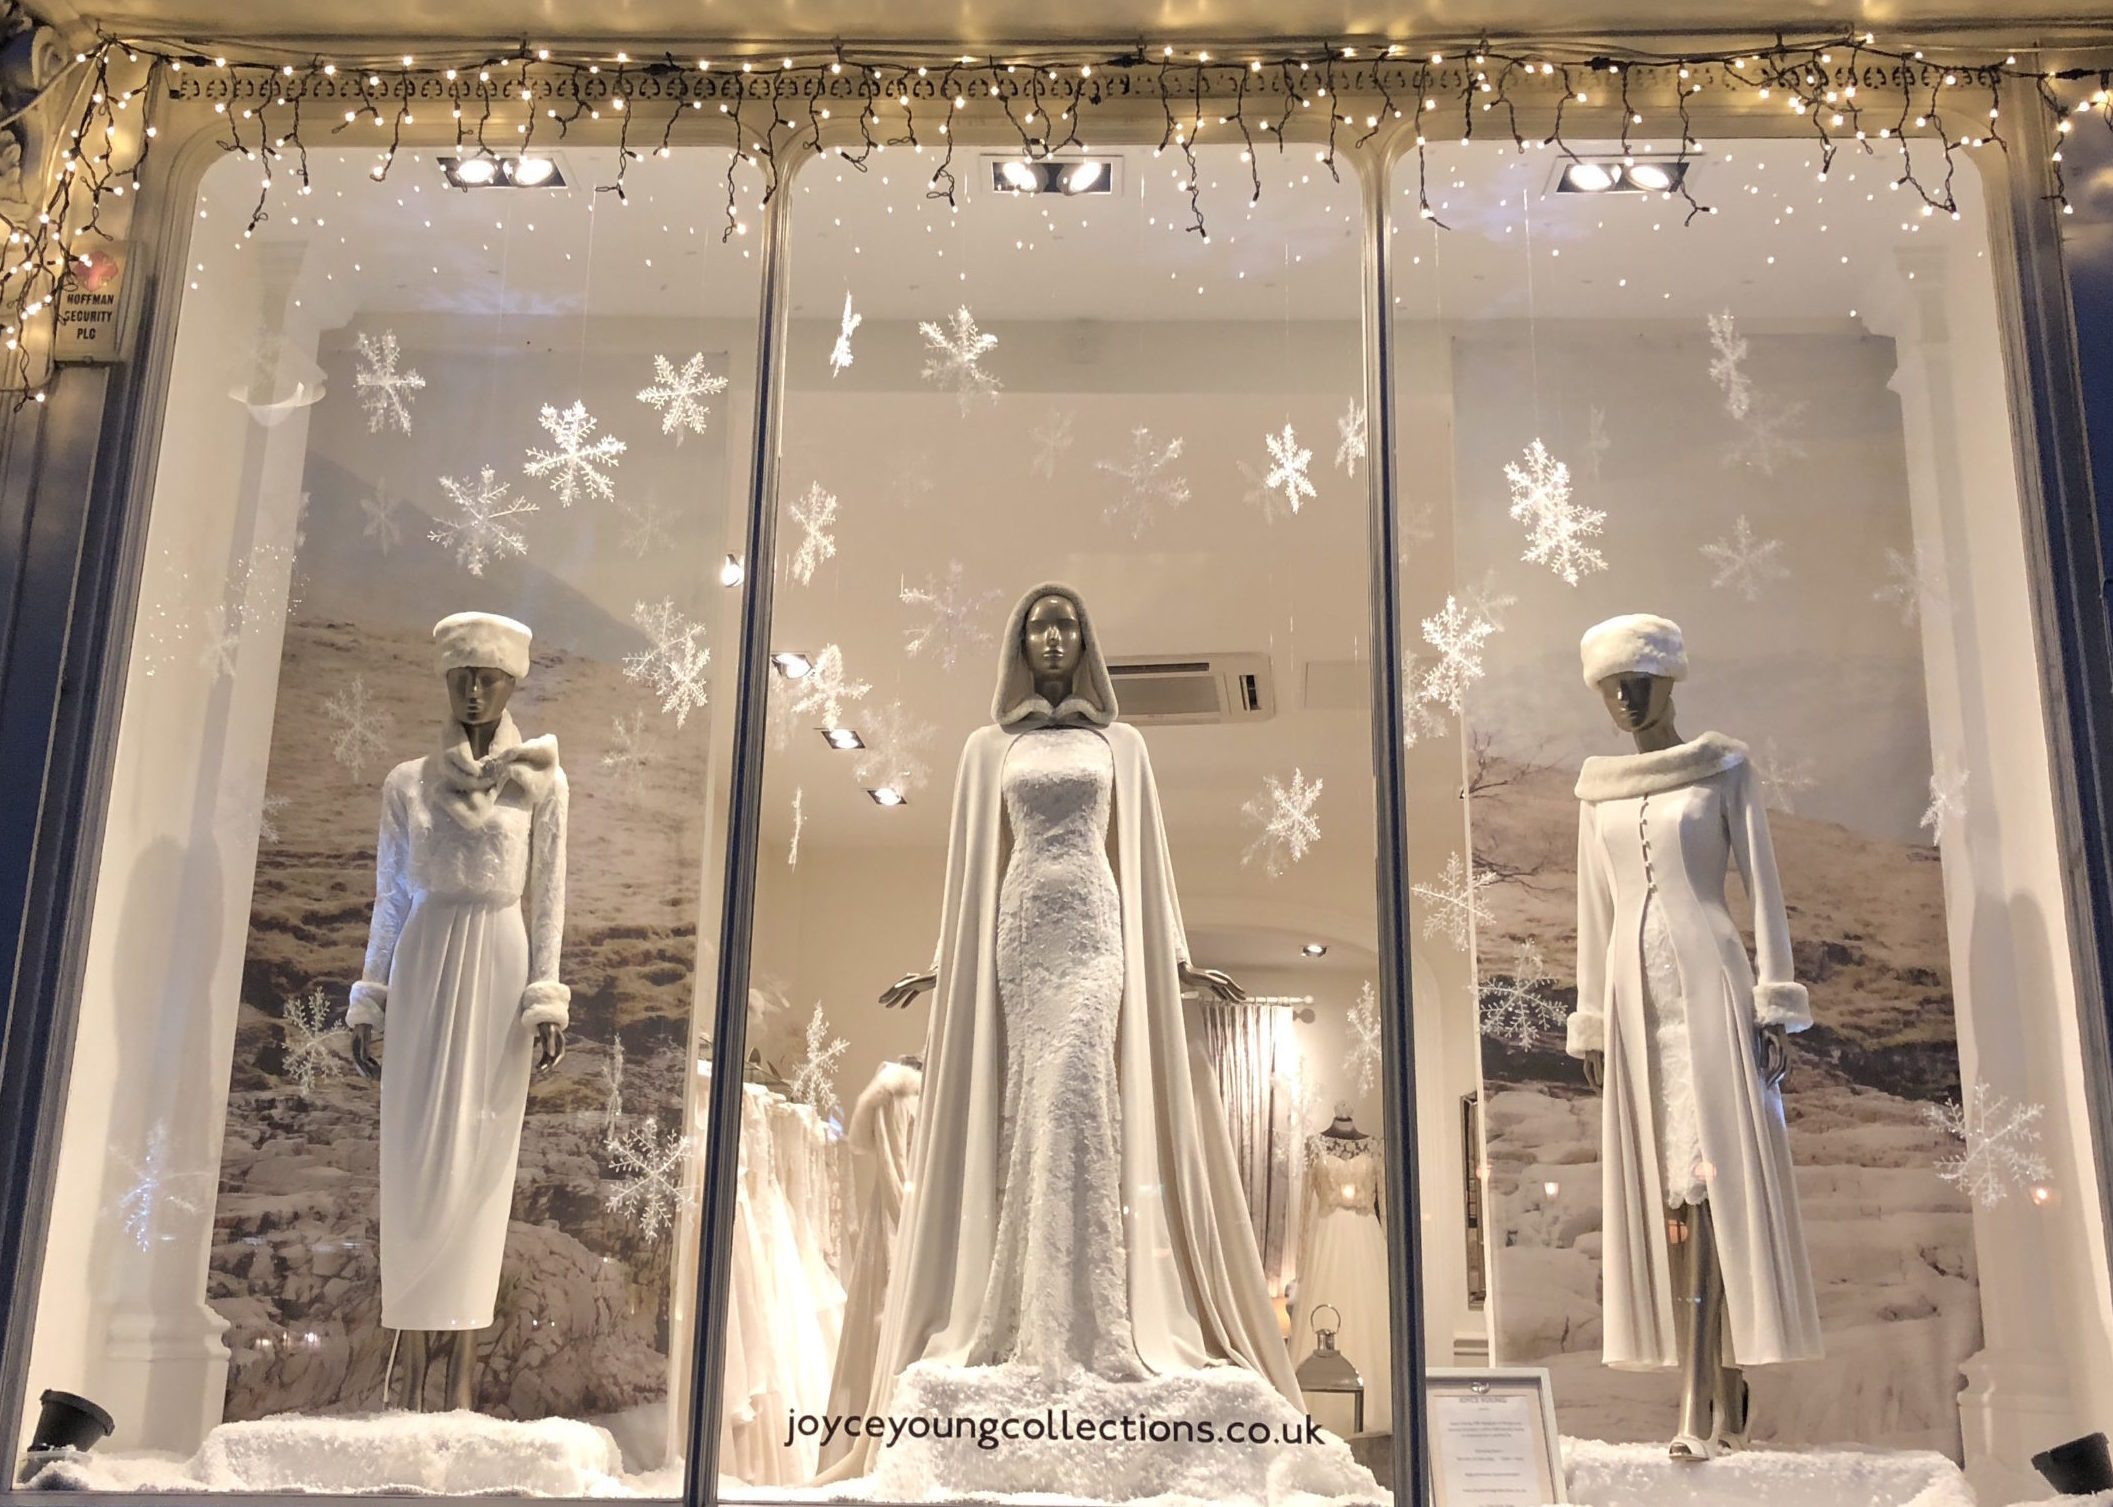 2018 Christmas window at Joyce Young London